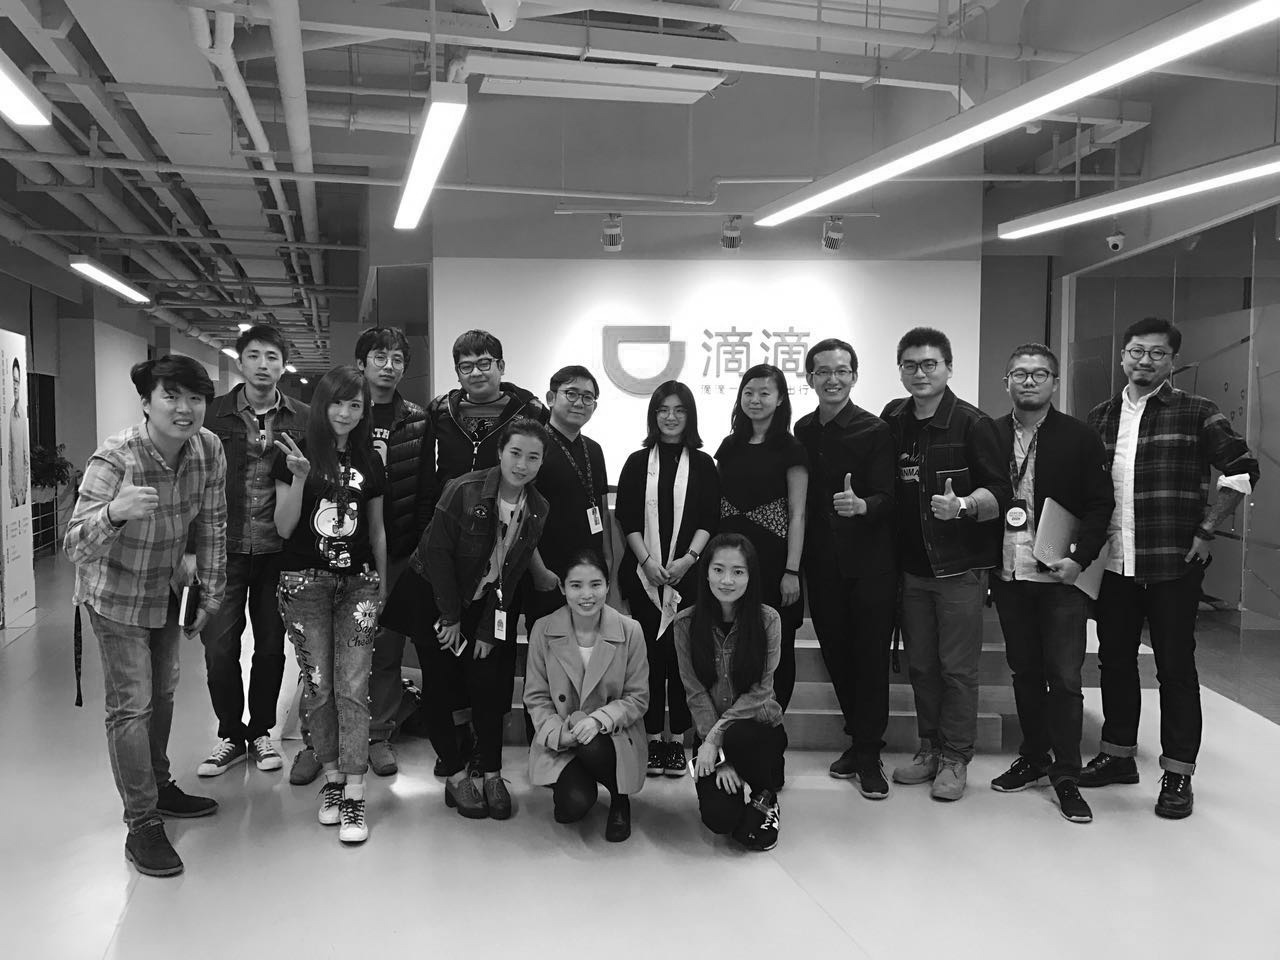 The Beijing product team at Didi Chuxing.